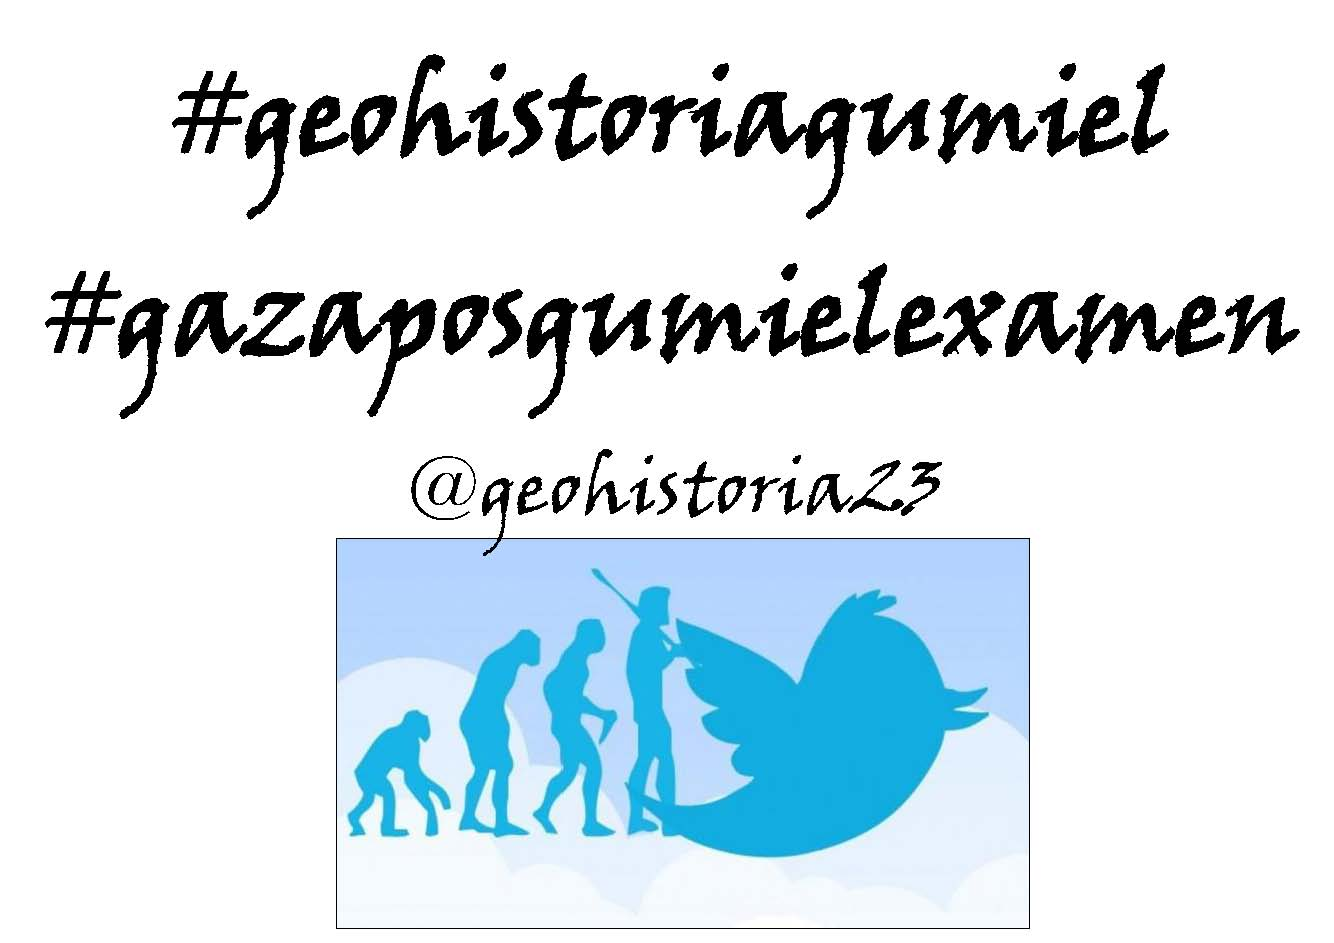 #geohistoriagumiel